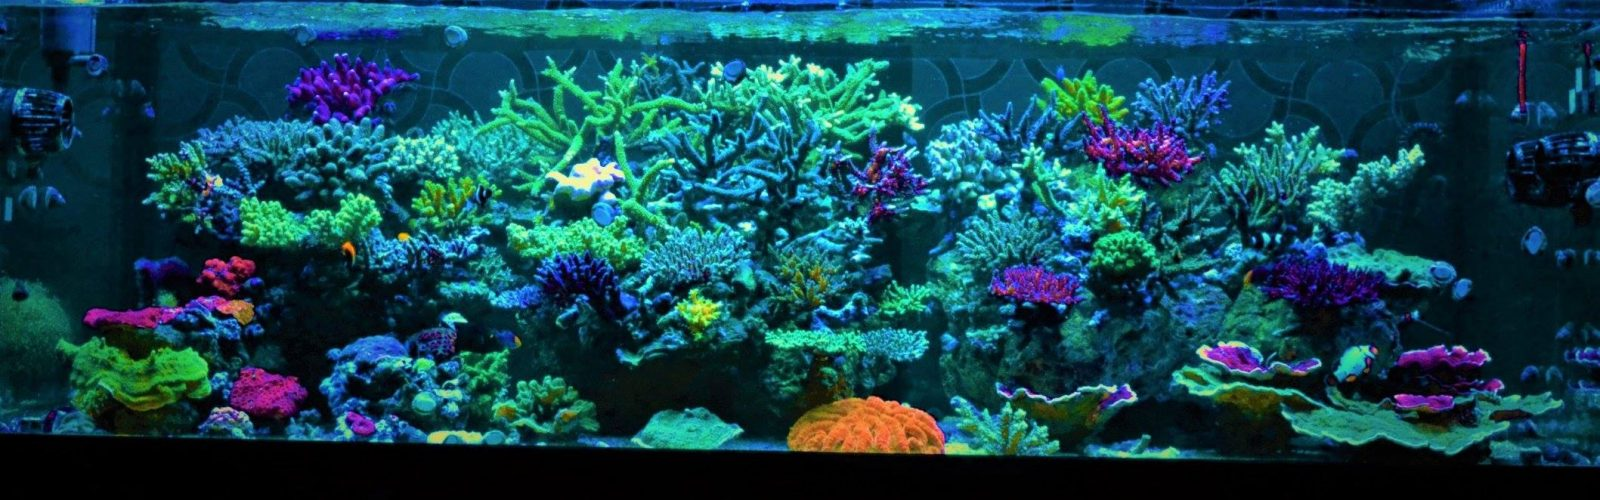 incroyable-aquarium-reef-led-orphek